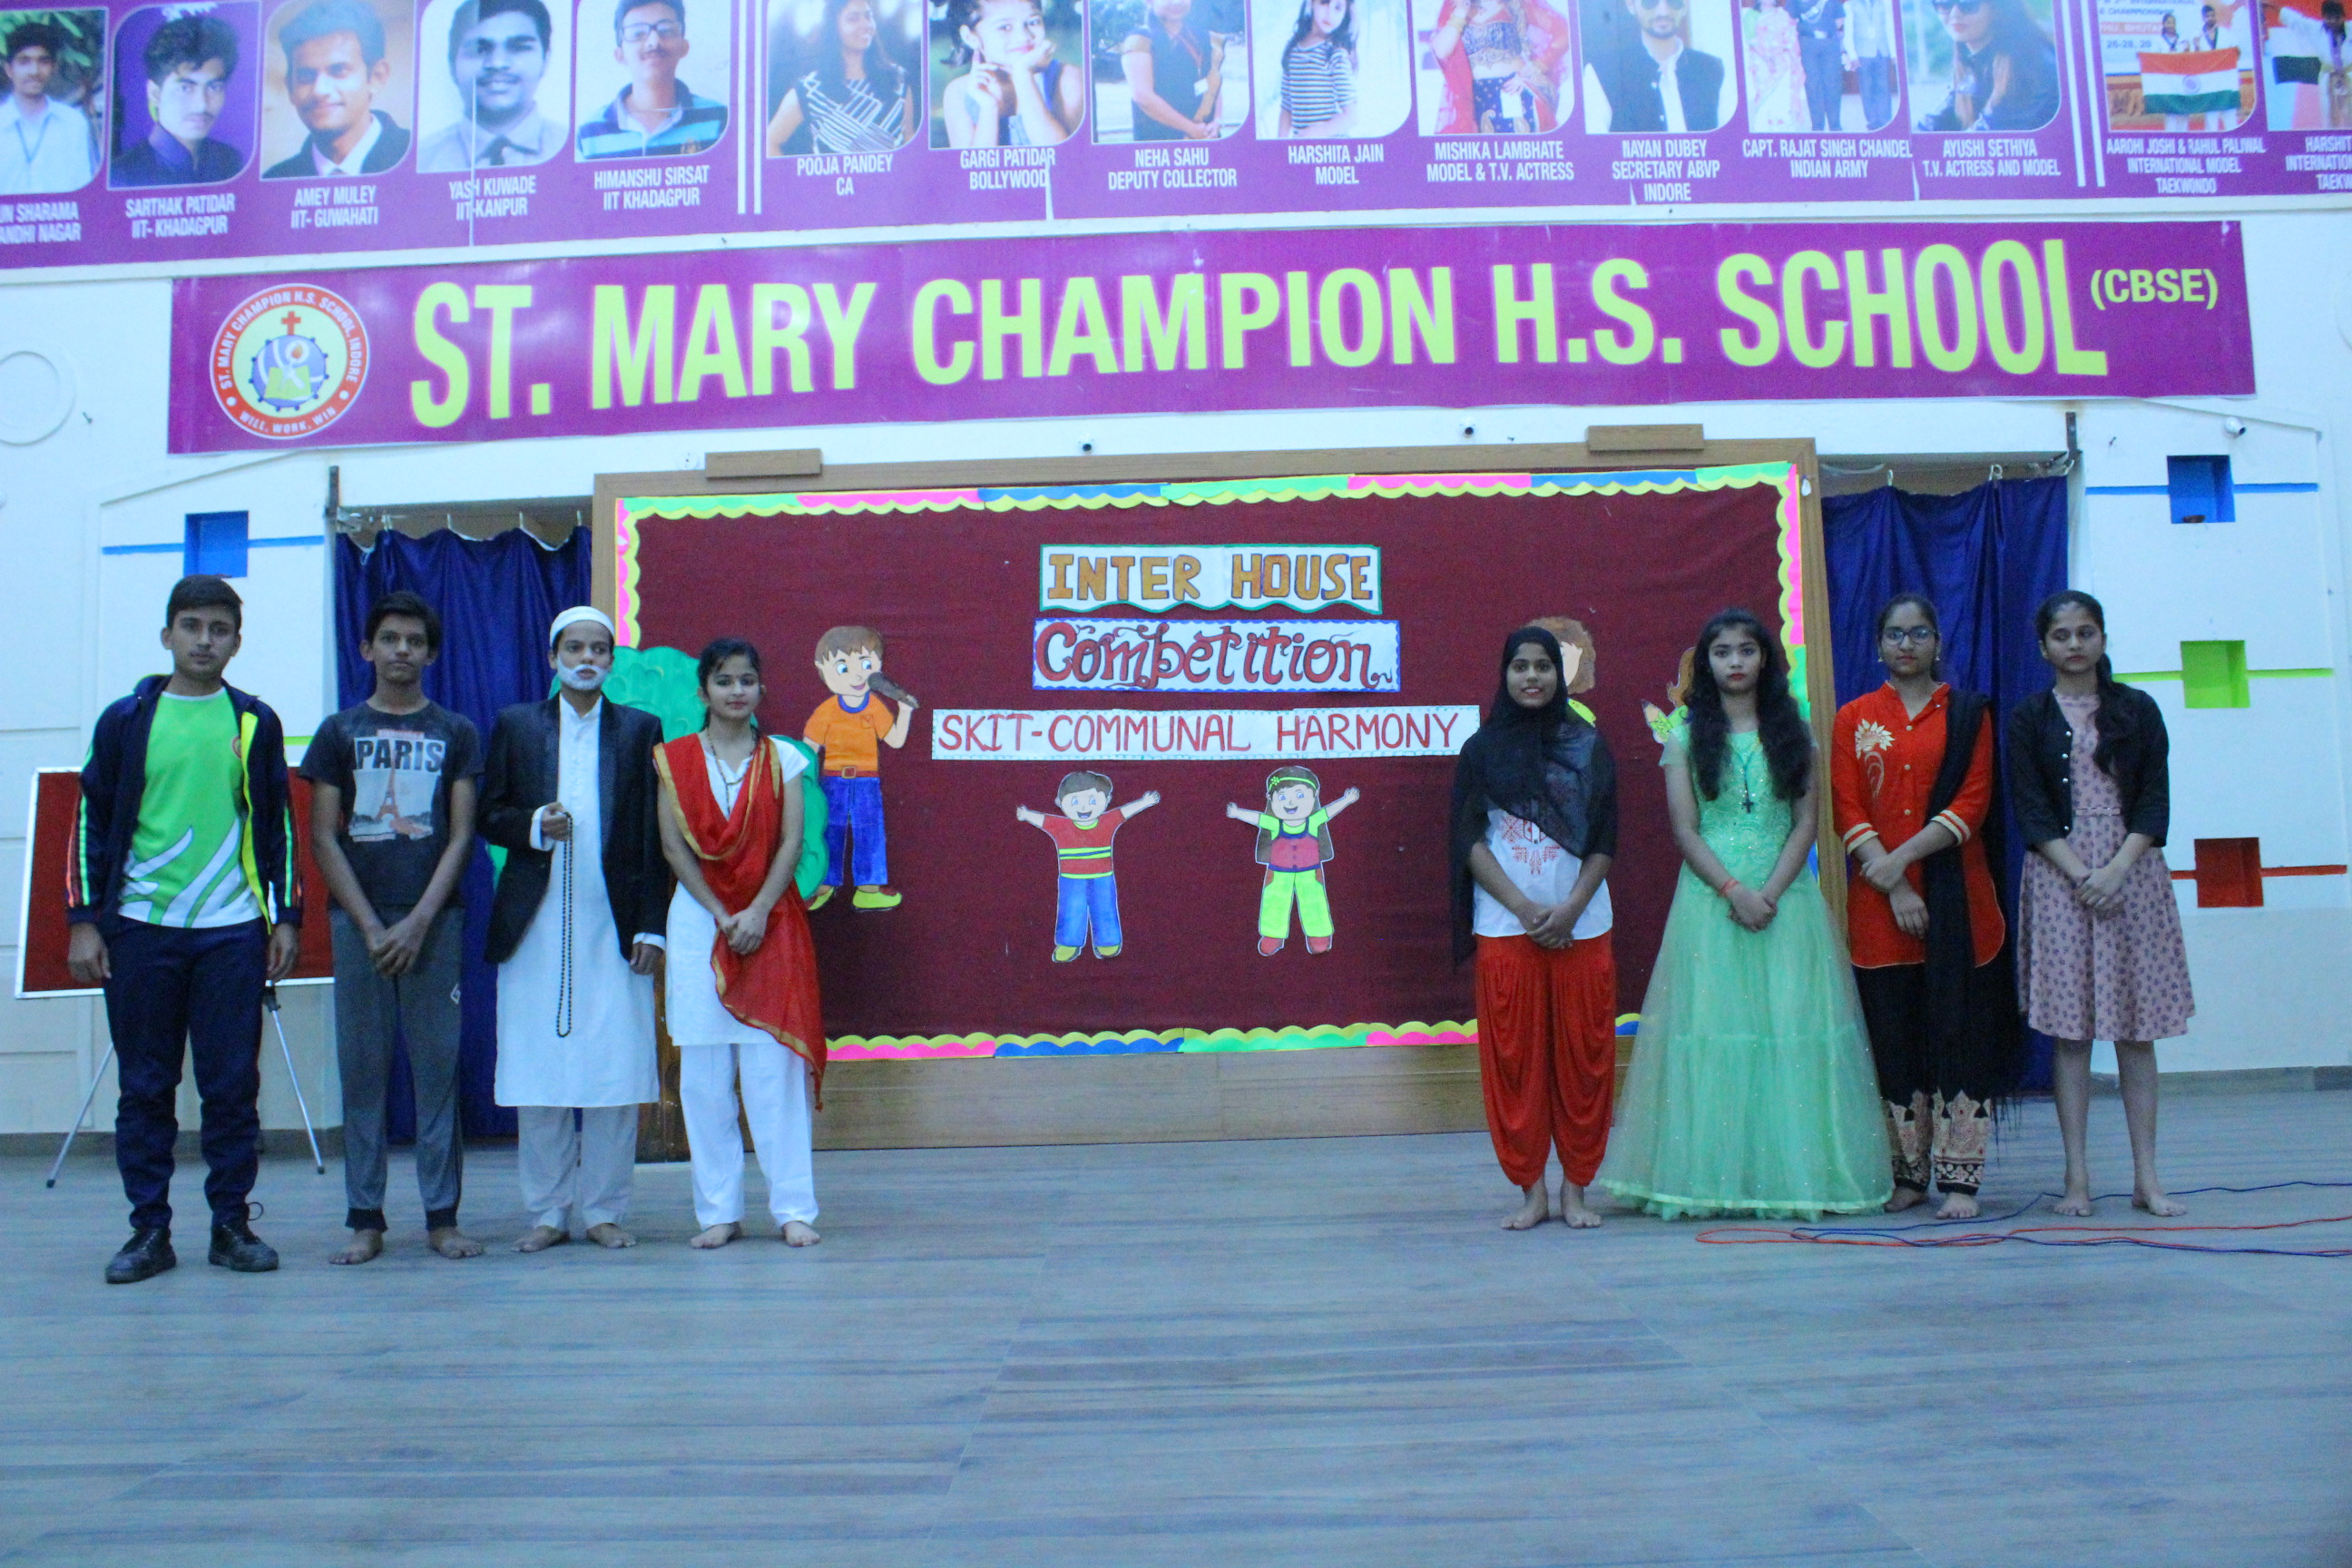 Inter-House Skit Competition